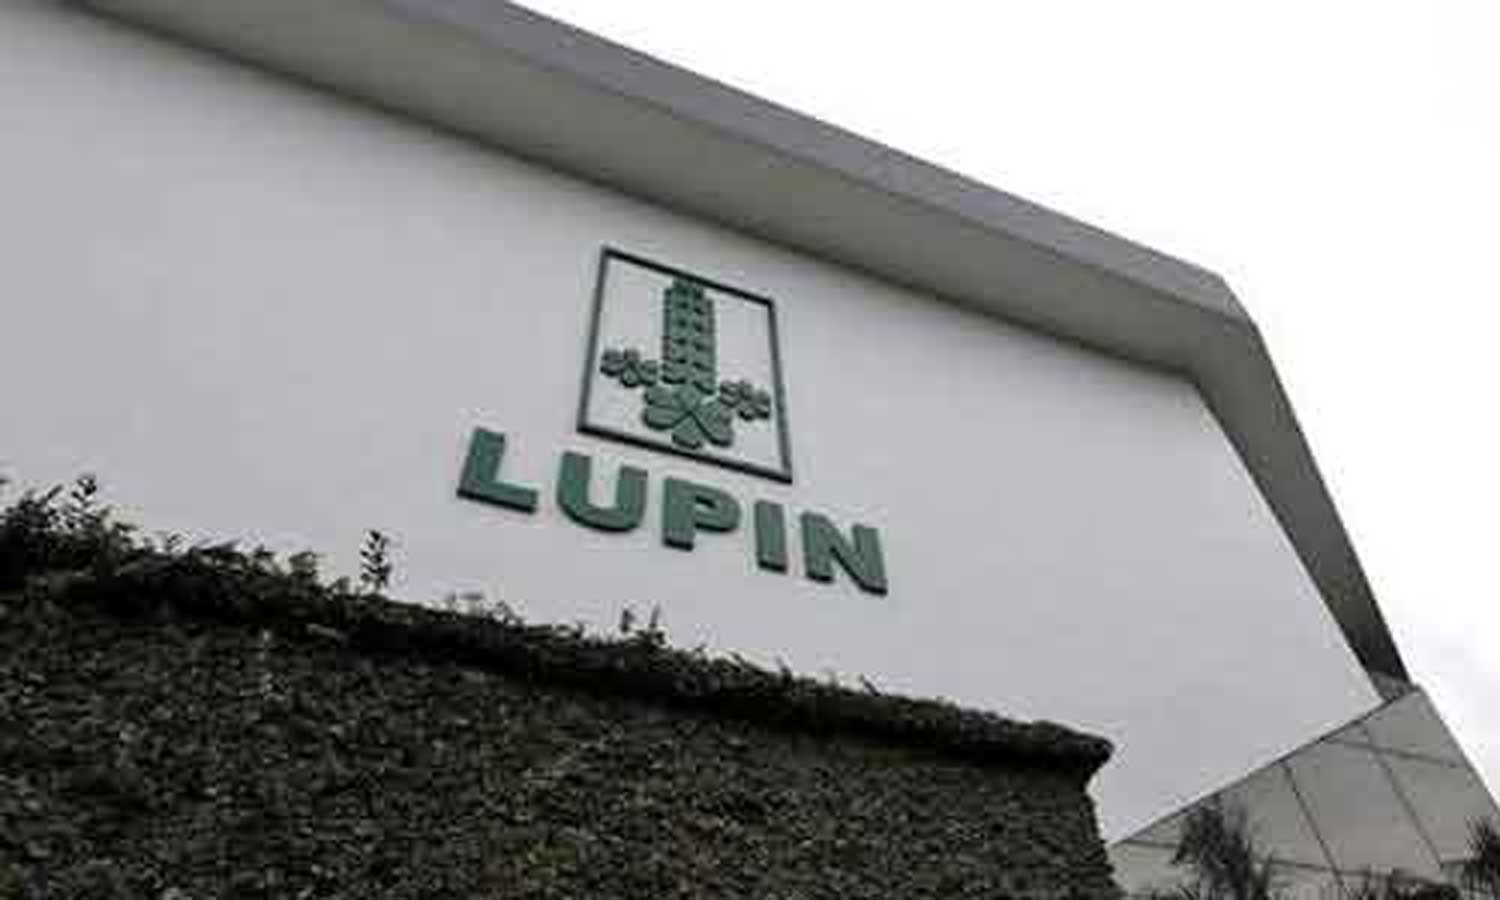 Lupin launches Mycophenolic Acid Delayed-Release Tablets USP